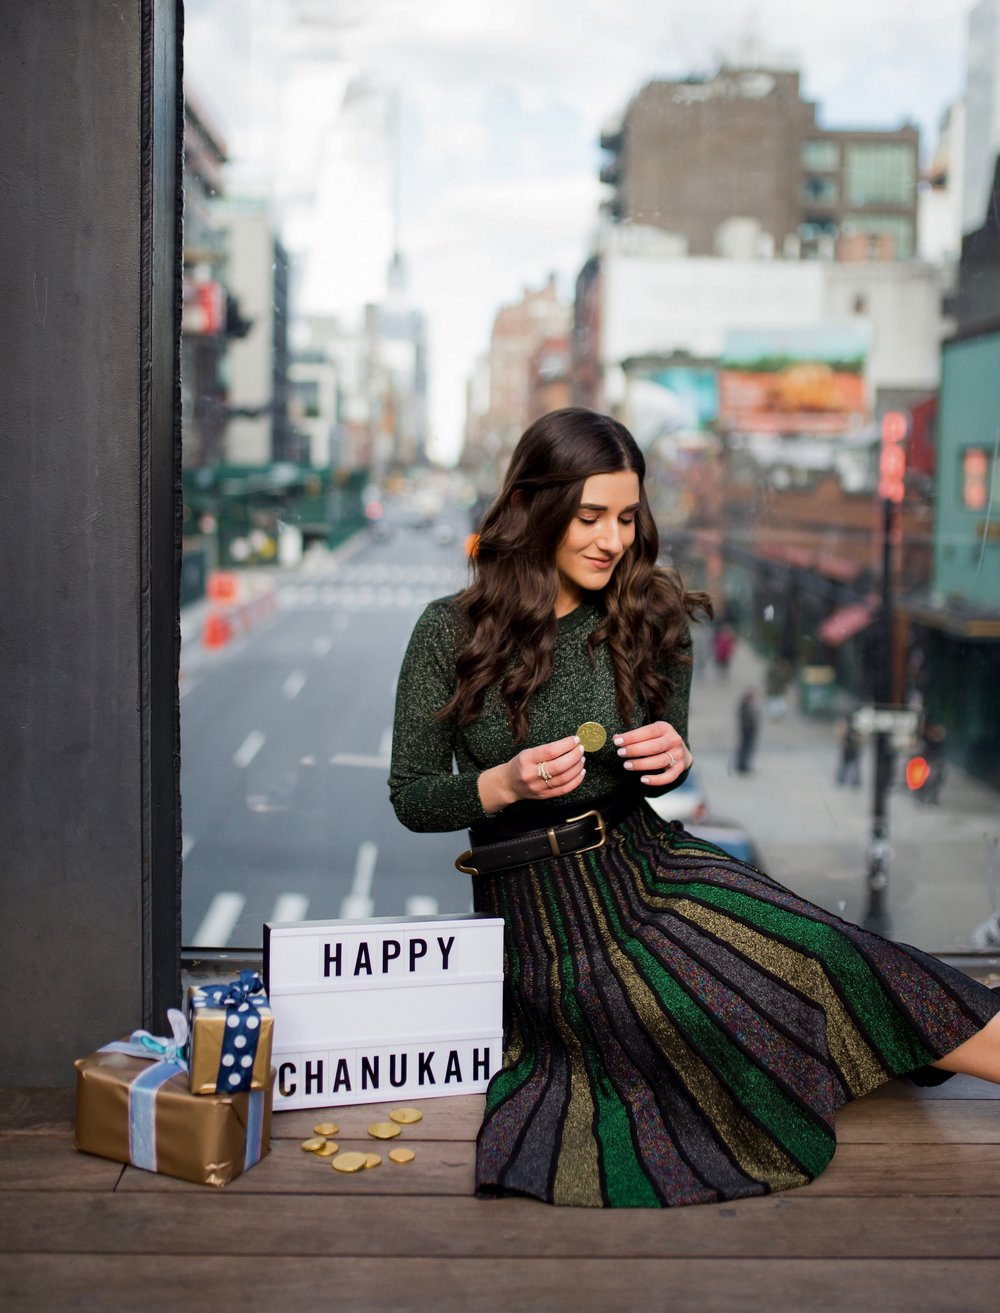 So You Wanna Talk About Diversity Don't forget me Esther Santer Fashion Blog NYC Street Style Blogger Outfit OOTD Trendy Shopping Miri Couture Laurel Creative Sparkles Midi Skirt Glitter Holiday Jewish 2018 Chanukah Green Glitter Top Long Sleeve Shirt.jpg